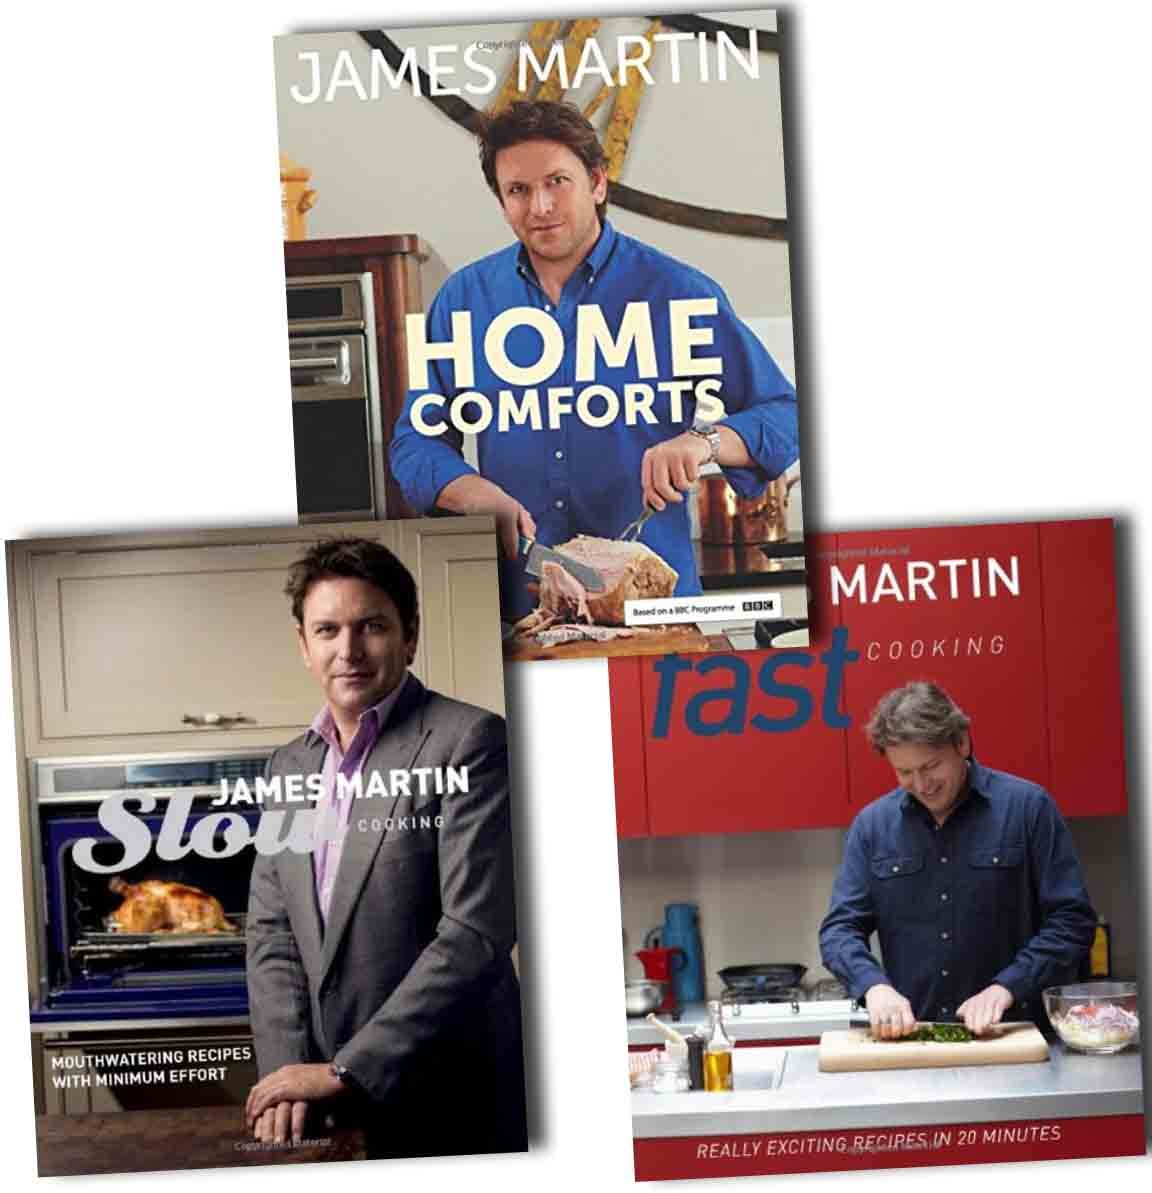 James Martin Cook Book Collection 3 Books Pack Set (Fast Cooking: Really Exciting Recipes in 20 Minutes, Slow Cooking: Mouthwatering Recipes with Minimum Effort, Home Comforts) pdf epub